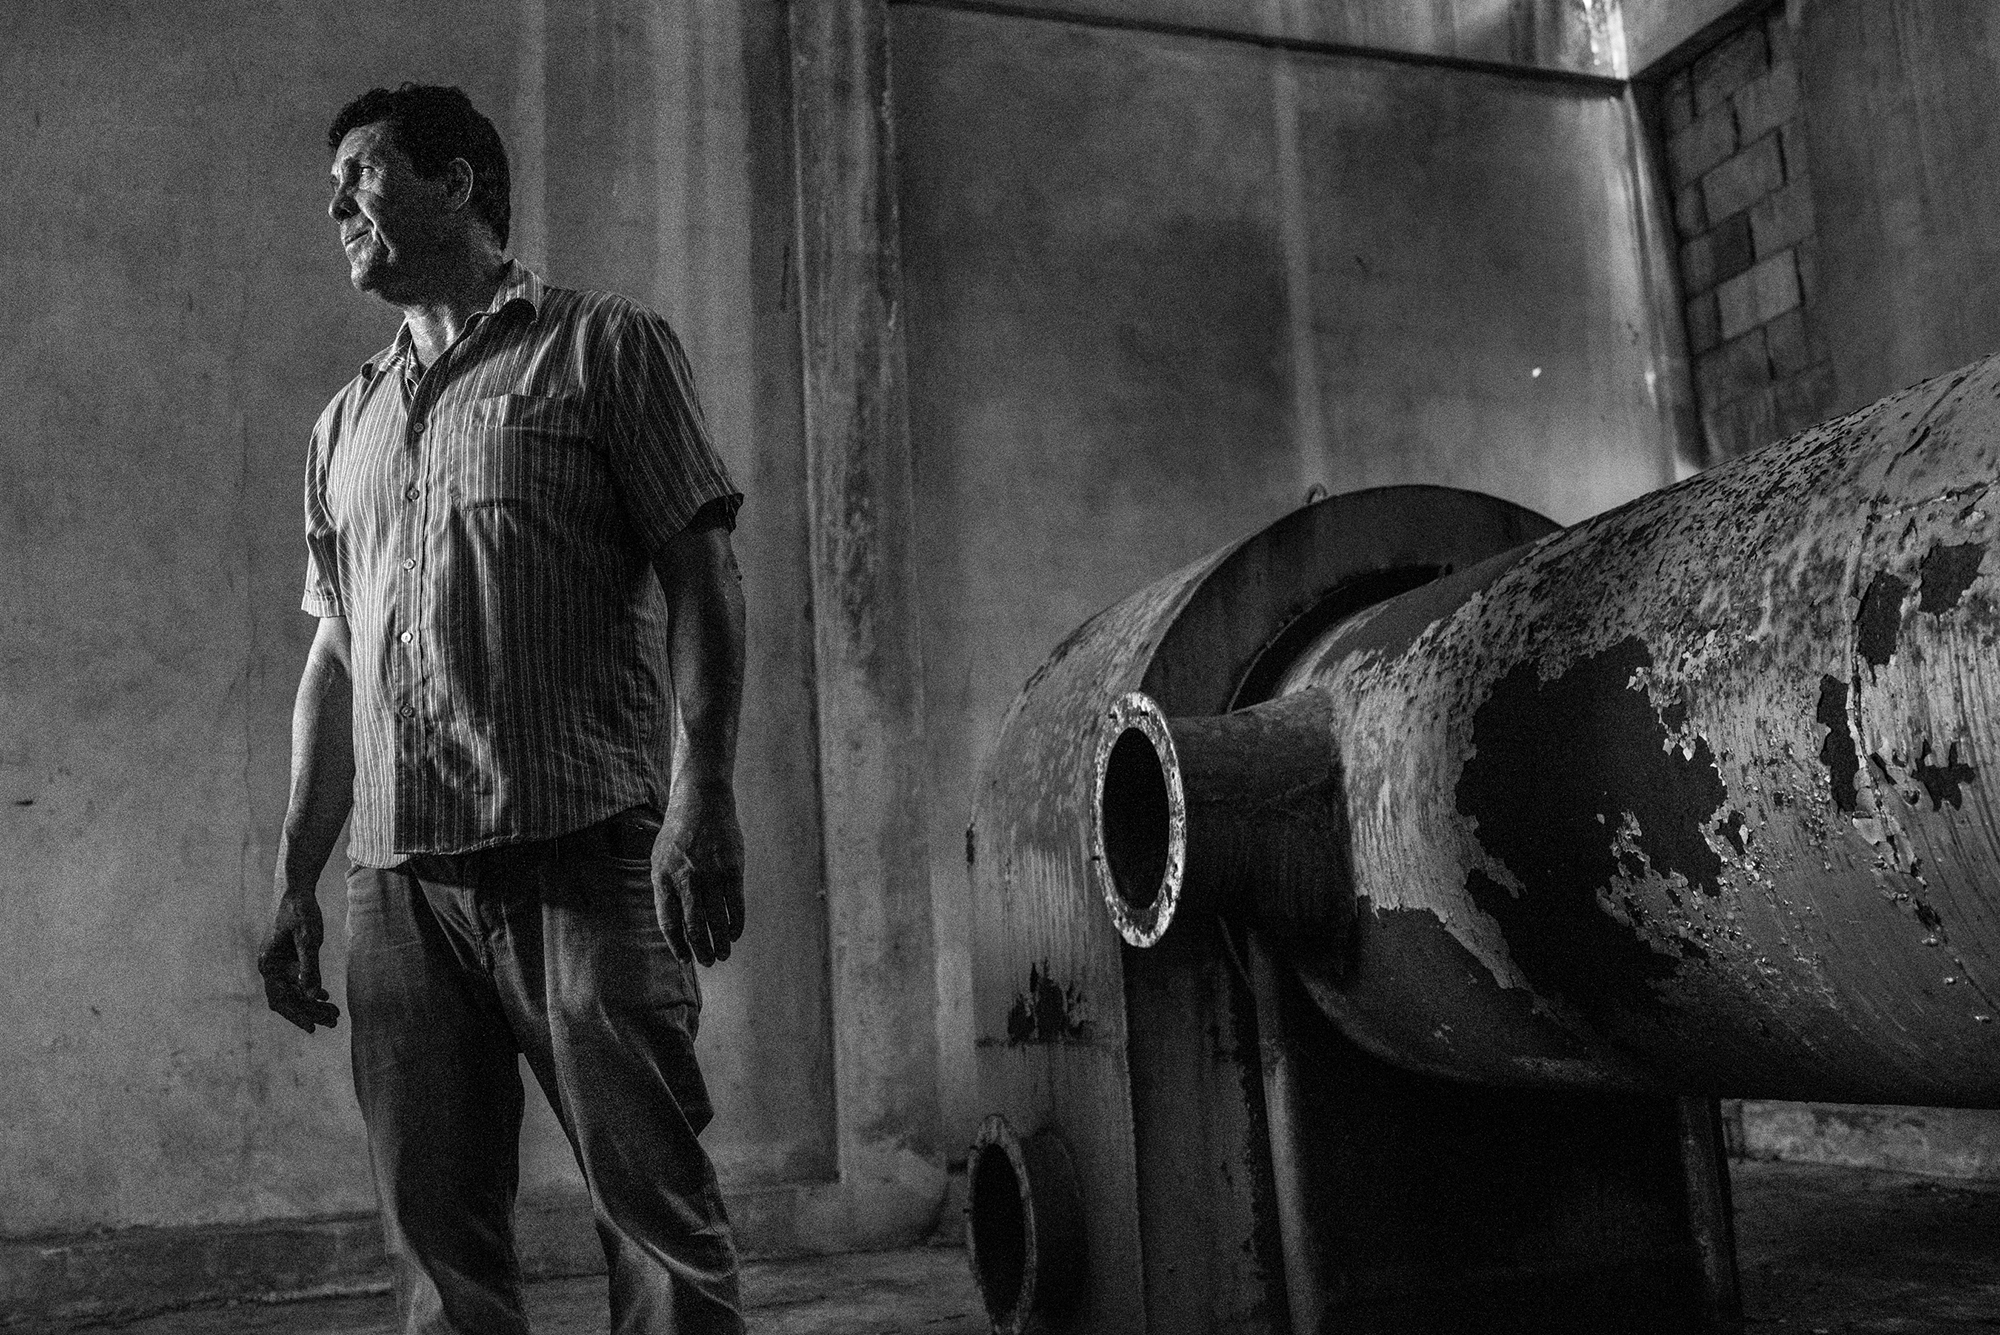 Tito Valentín, a community leader in Utuado, Puerto Rico, stands inside an old coffee-processing plant, which he hopes to revitalize for agro-tourism. Photo: Rebecca Kiger.